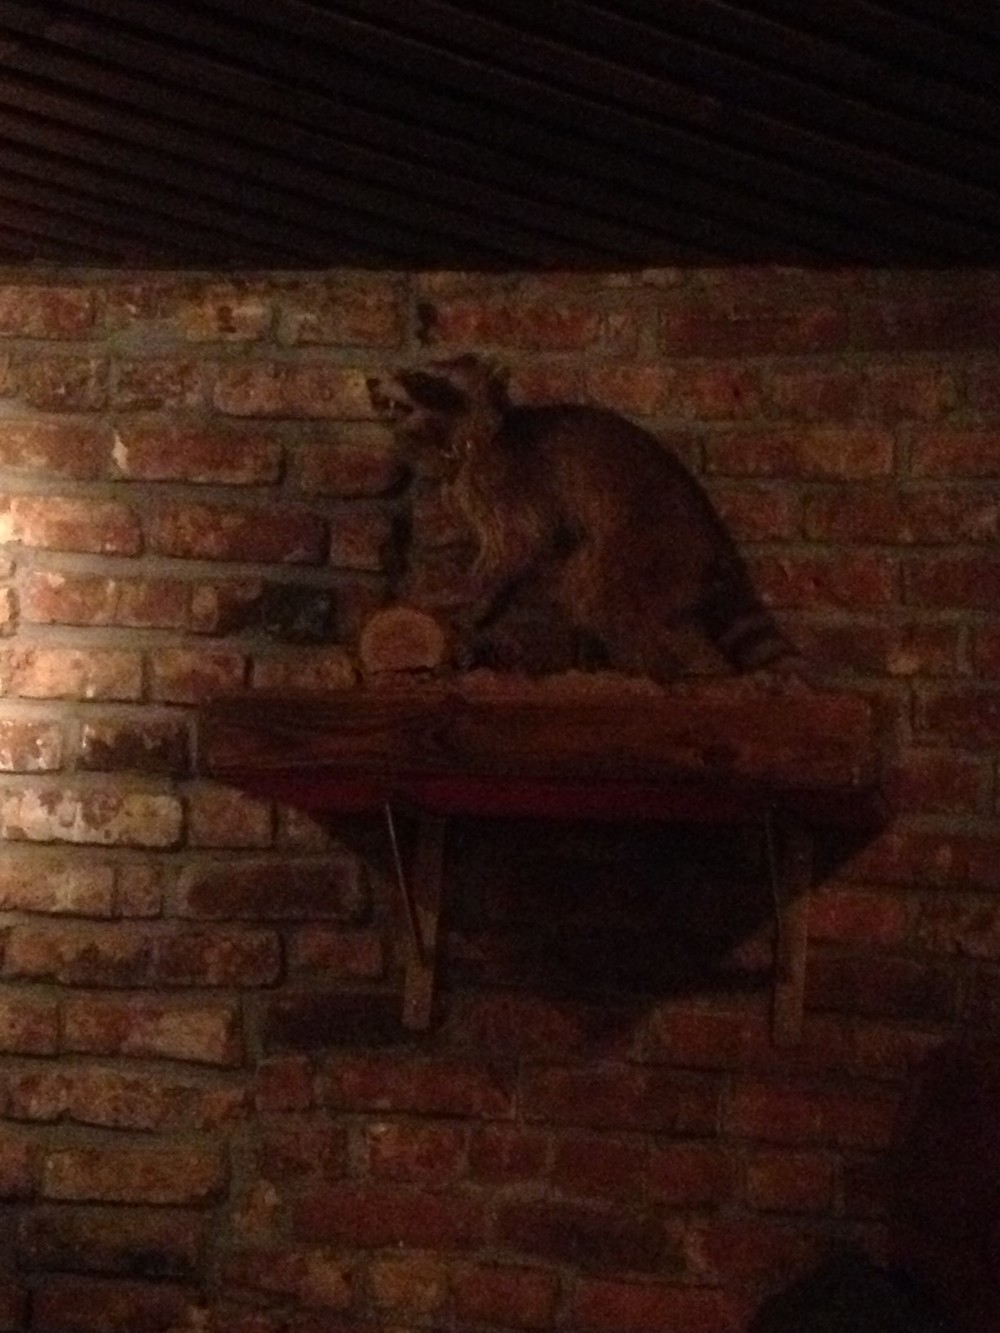 This raccoon was out at night, so it didn't have rabies. Also, it was dead.